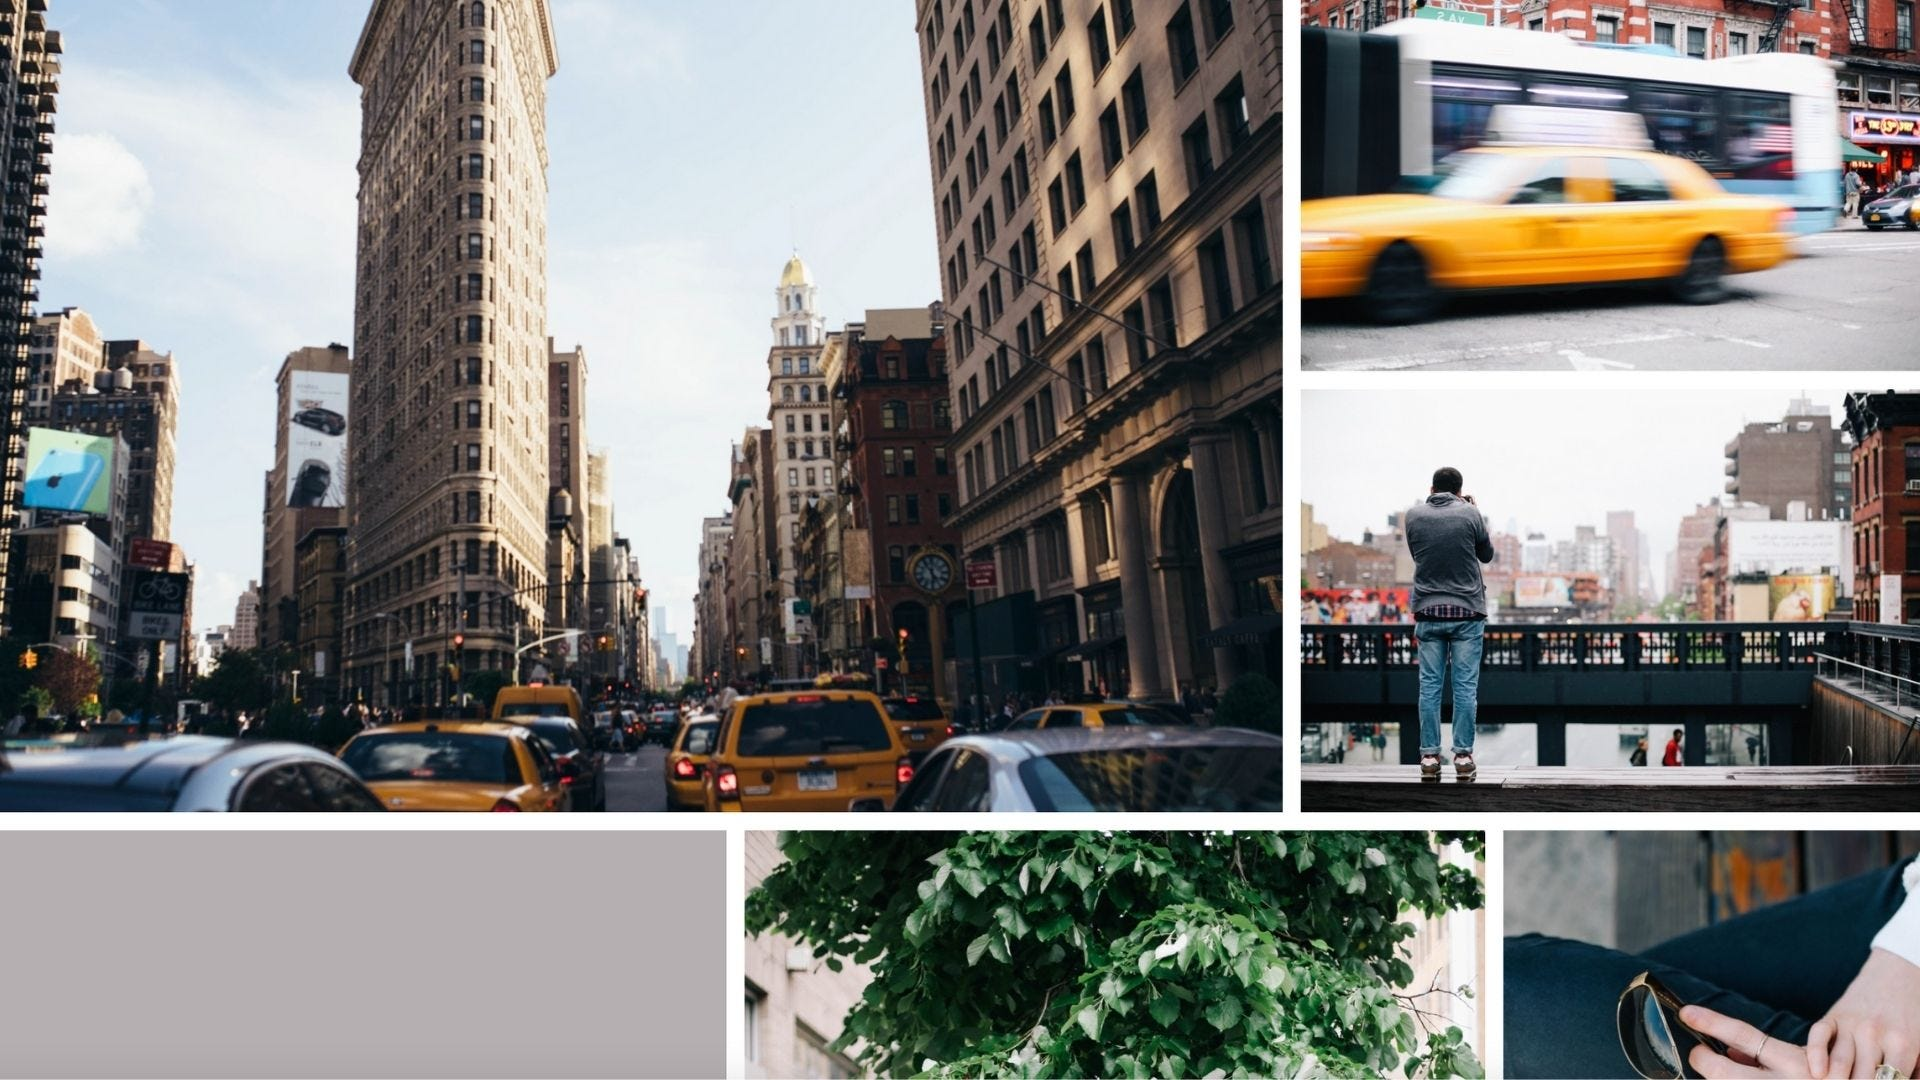 A photo collage from New York City